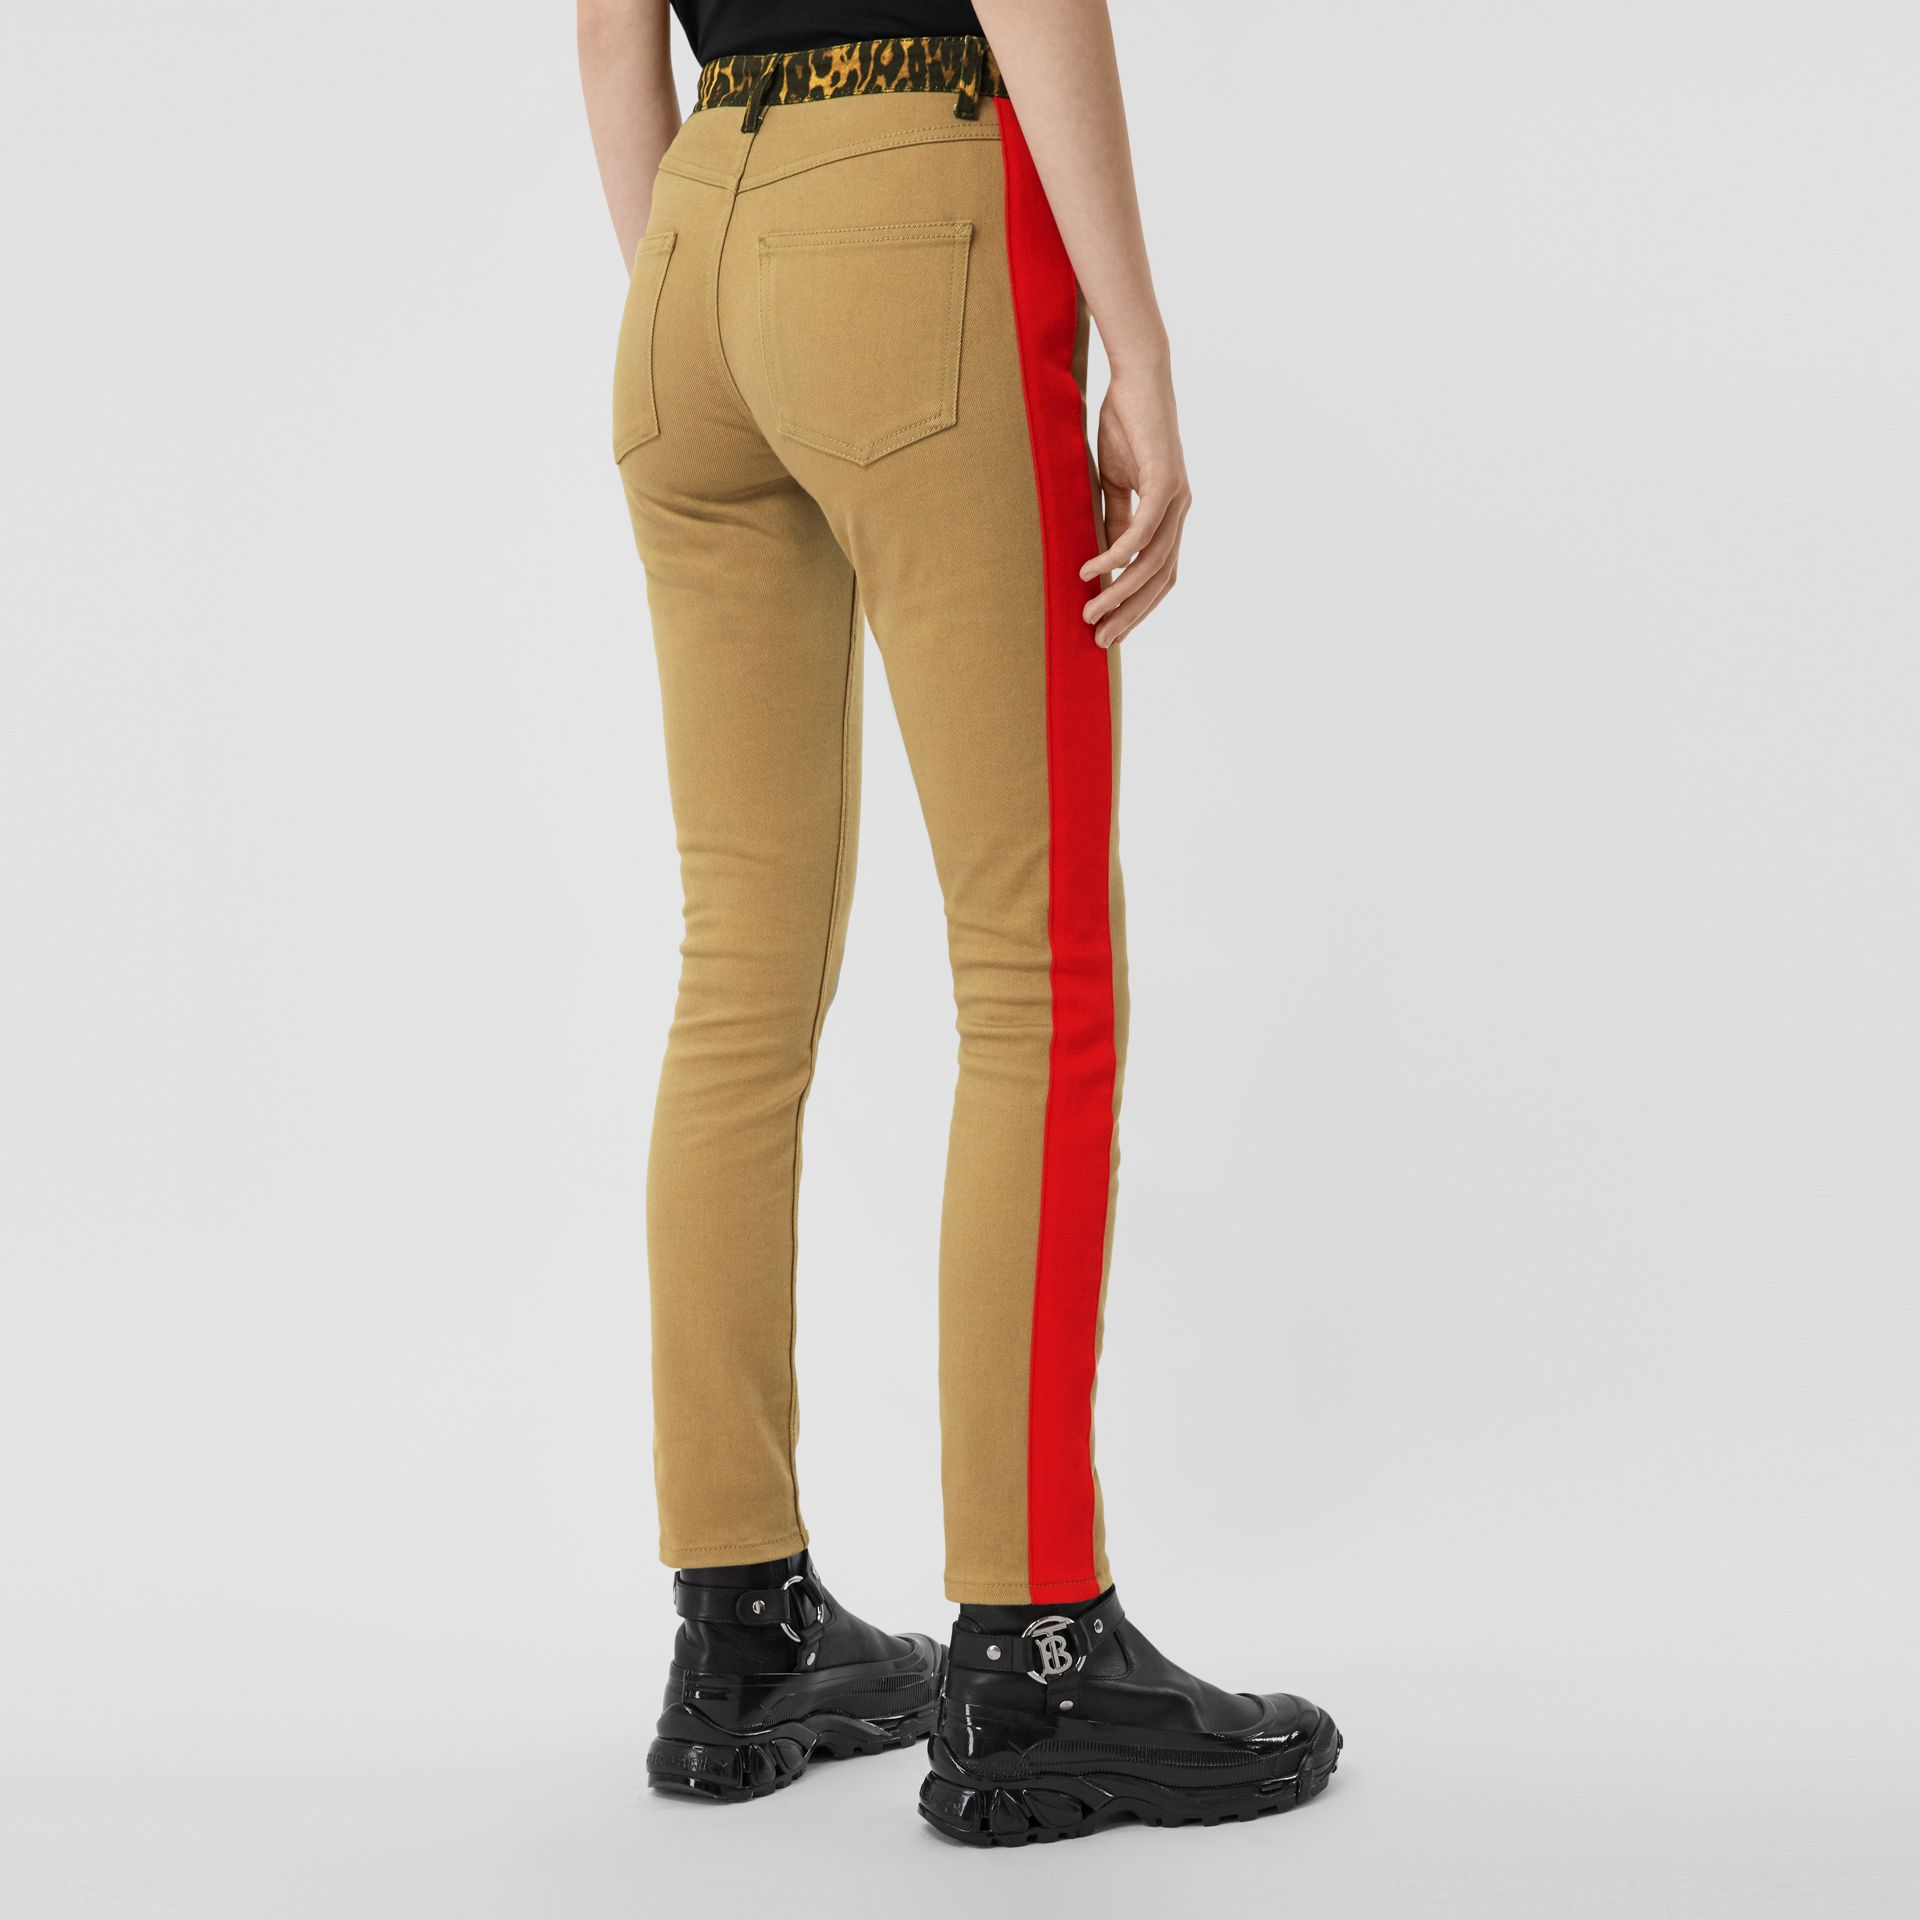 Skinny Fit Leopard Print Trim Japanese Denim Jeans in Rich Olive - Women | Burberry - gallery image 2